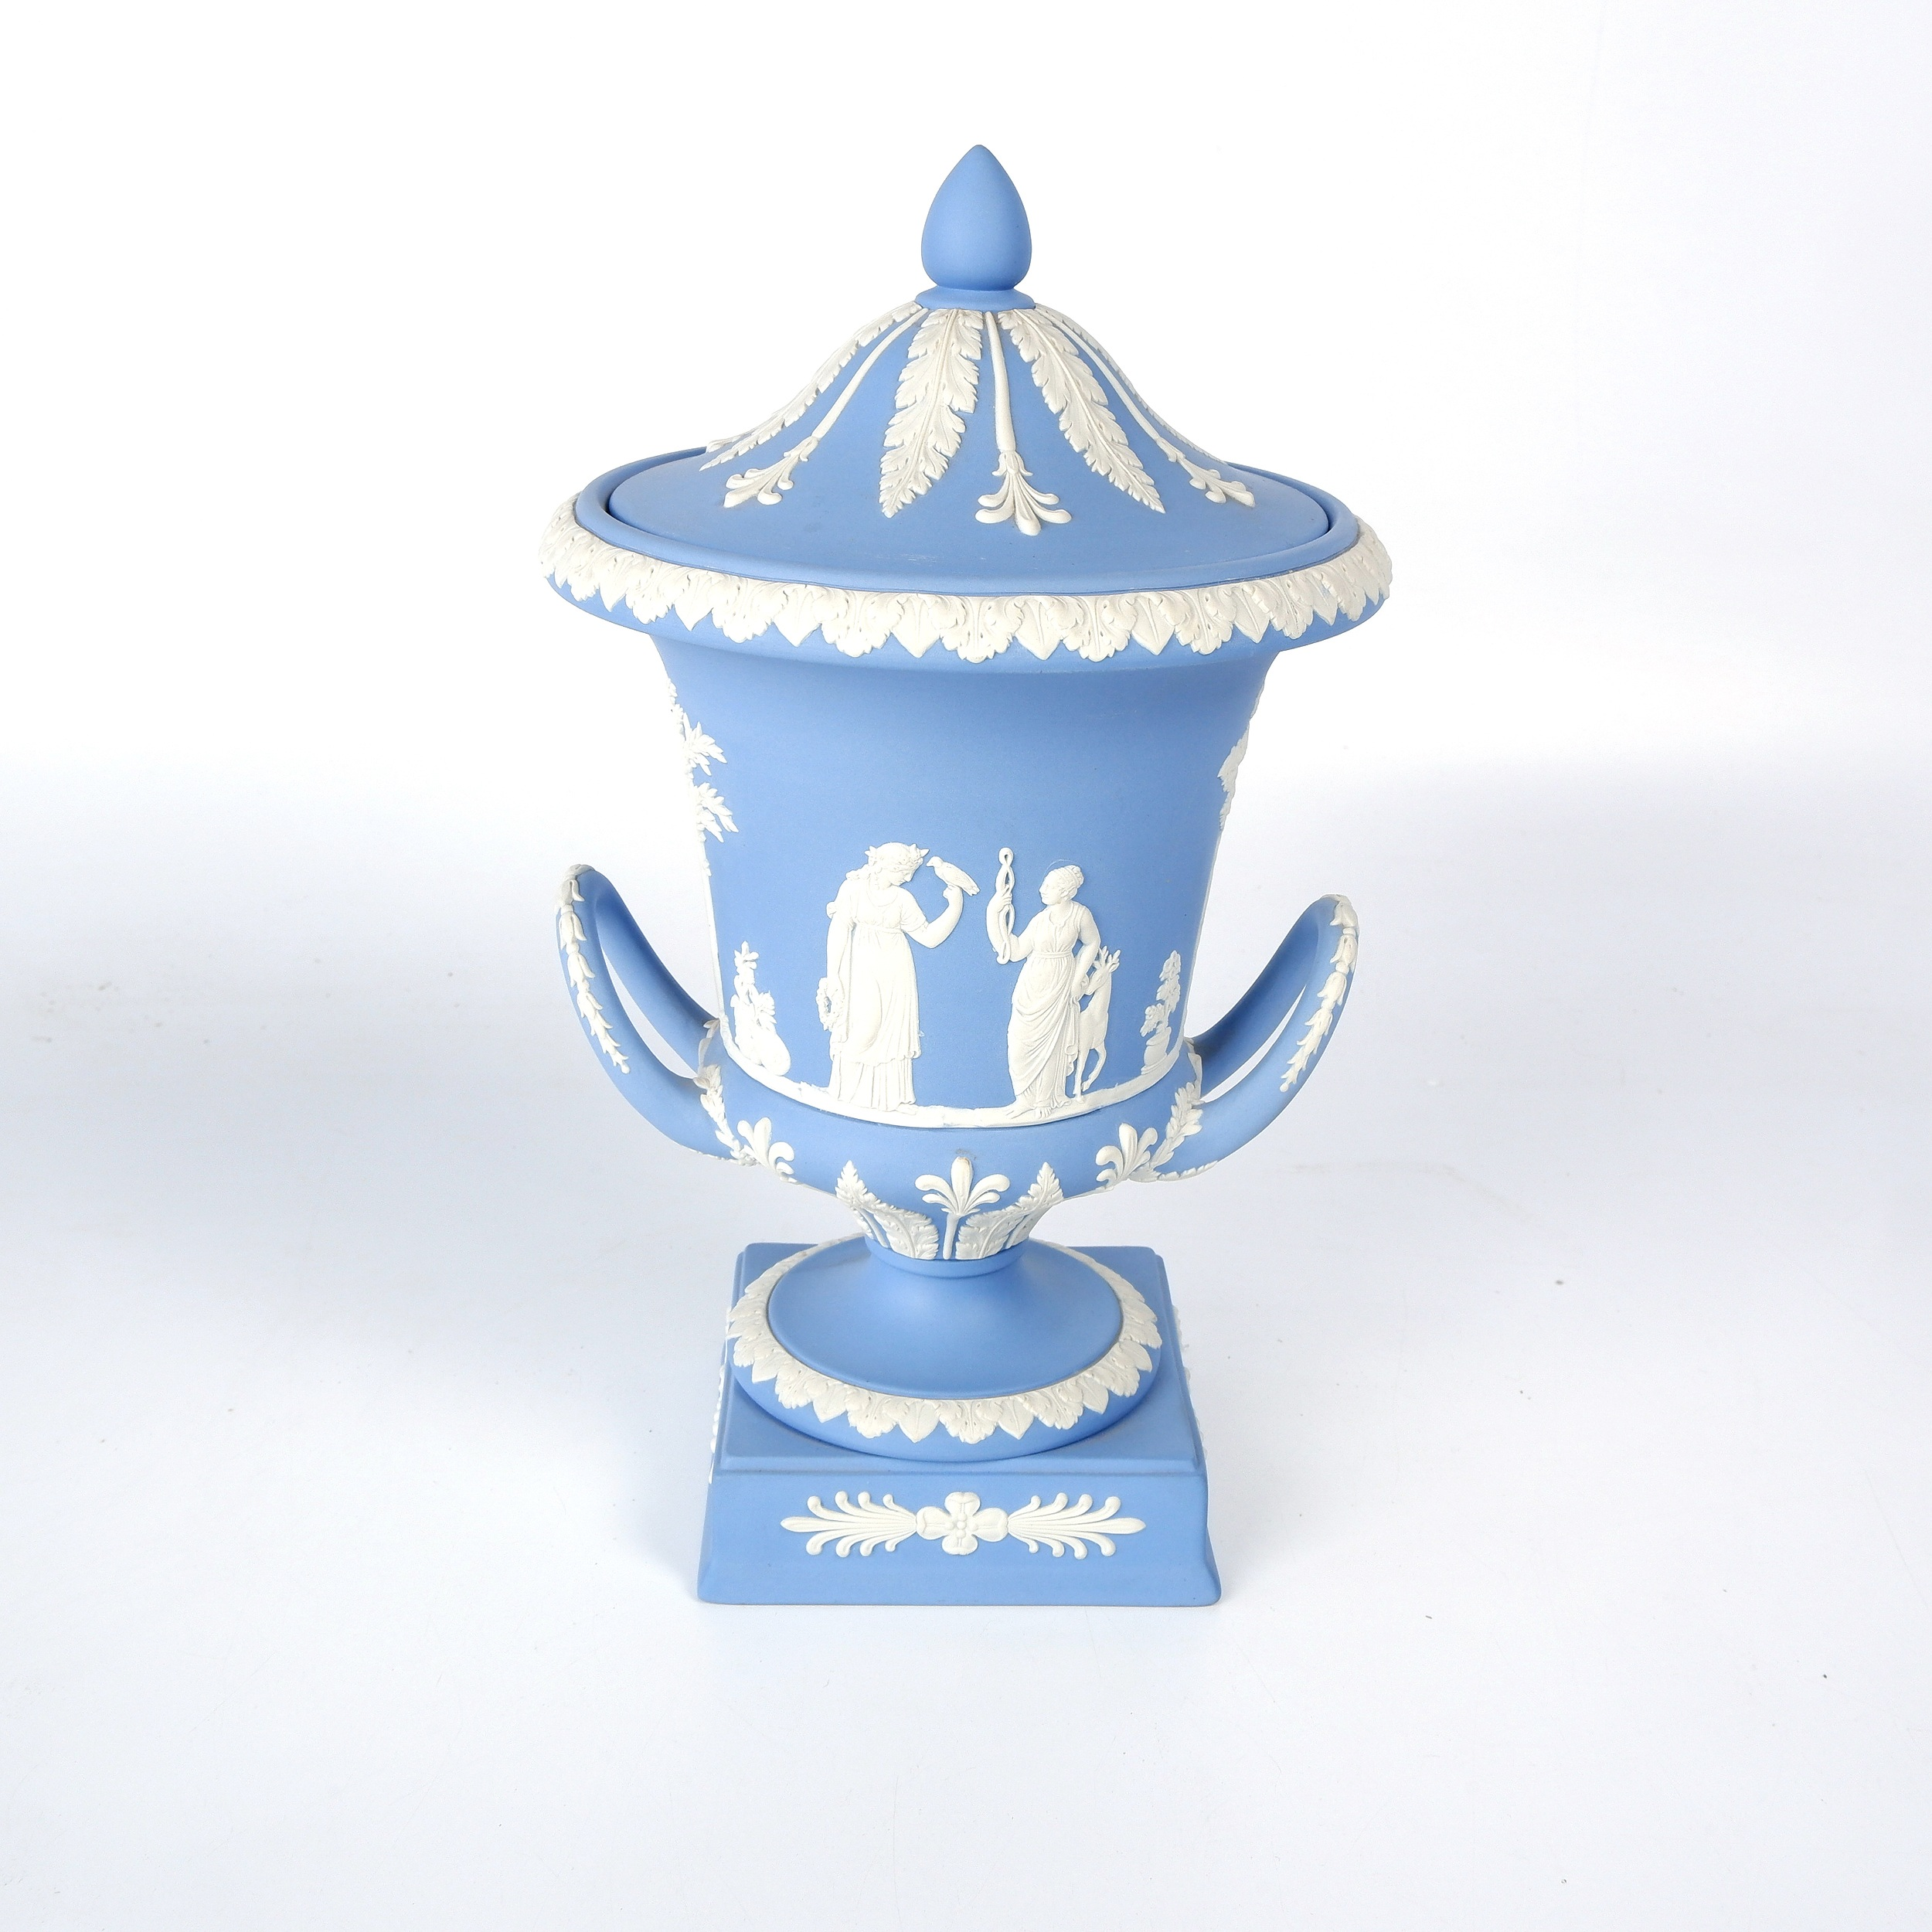 'English Wedgwood Blue and White Jasperware Campana Form Urn with neoclassical Floral and Foliate Decoration'